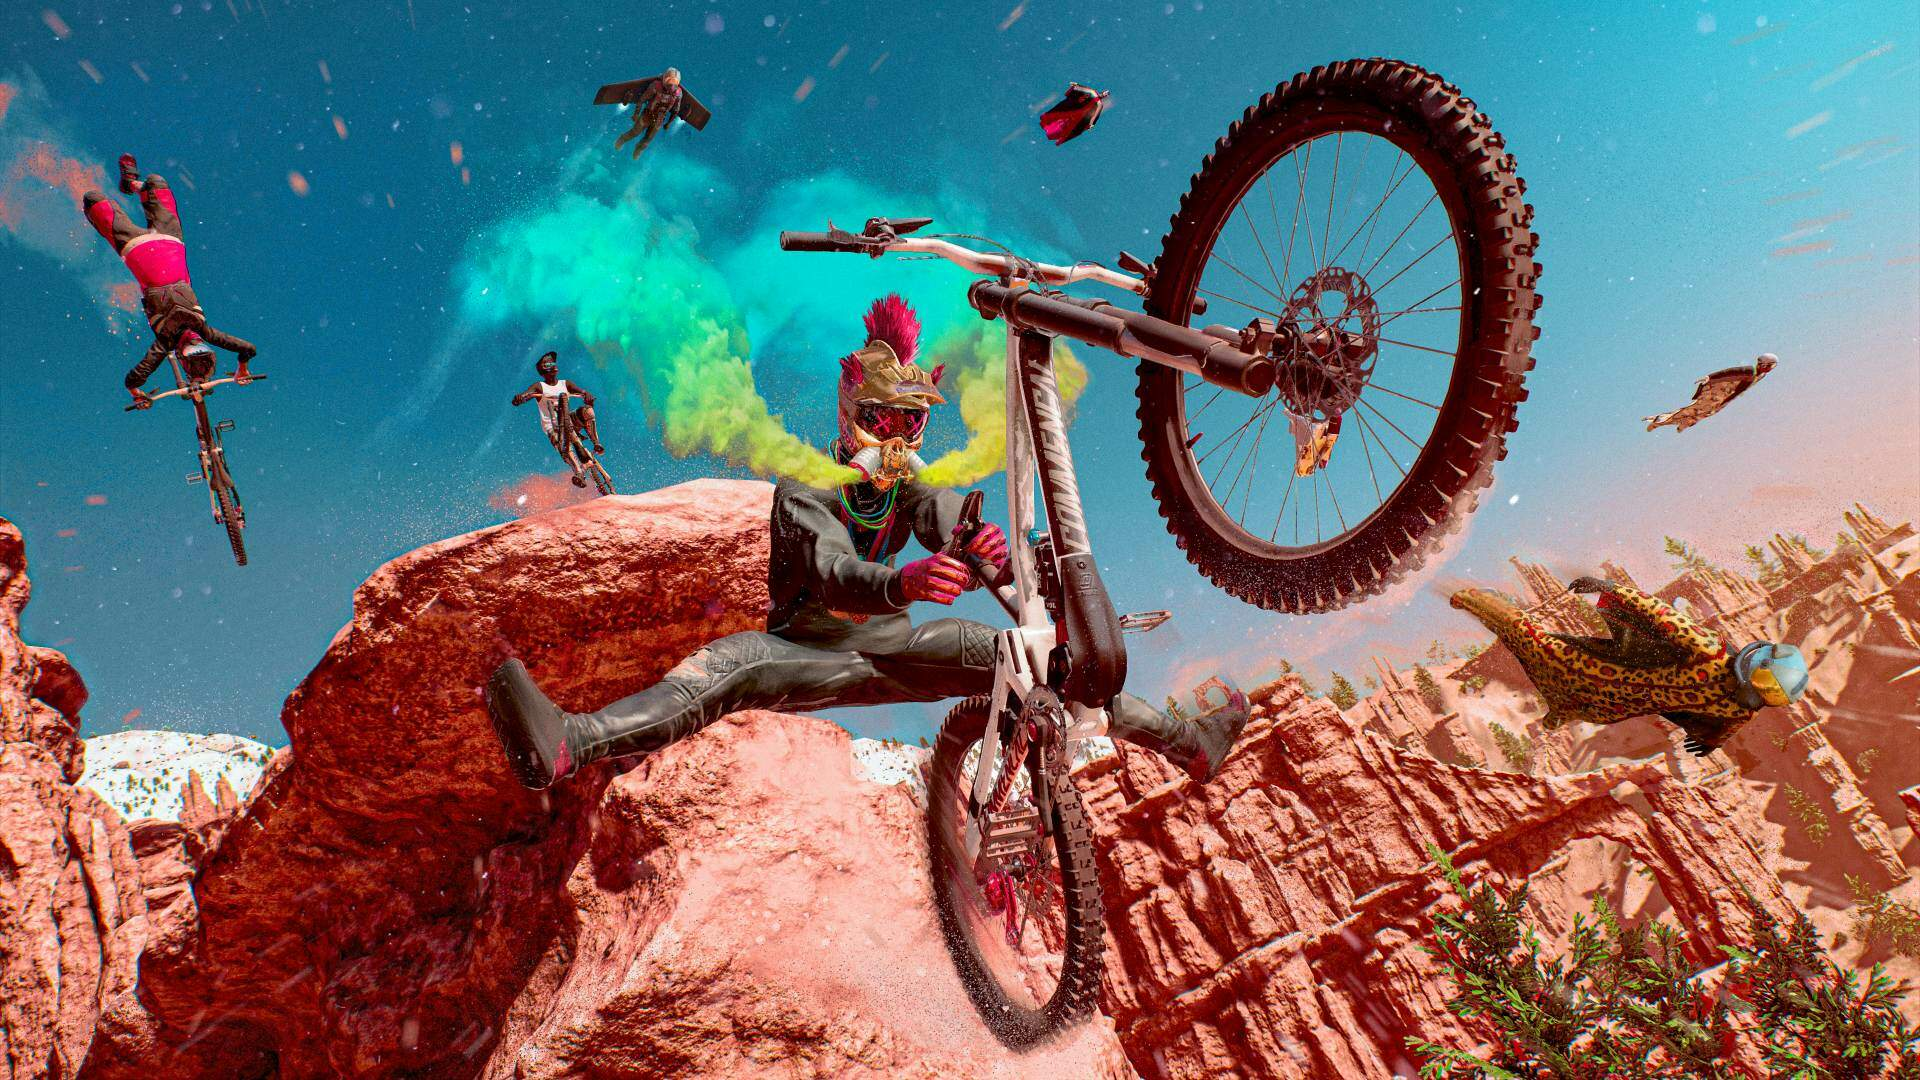 Ubisoft Reveals Riders Republic, a Multiplayer Extreme Sports Sandbox